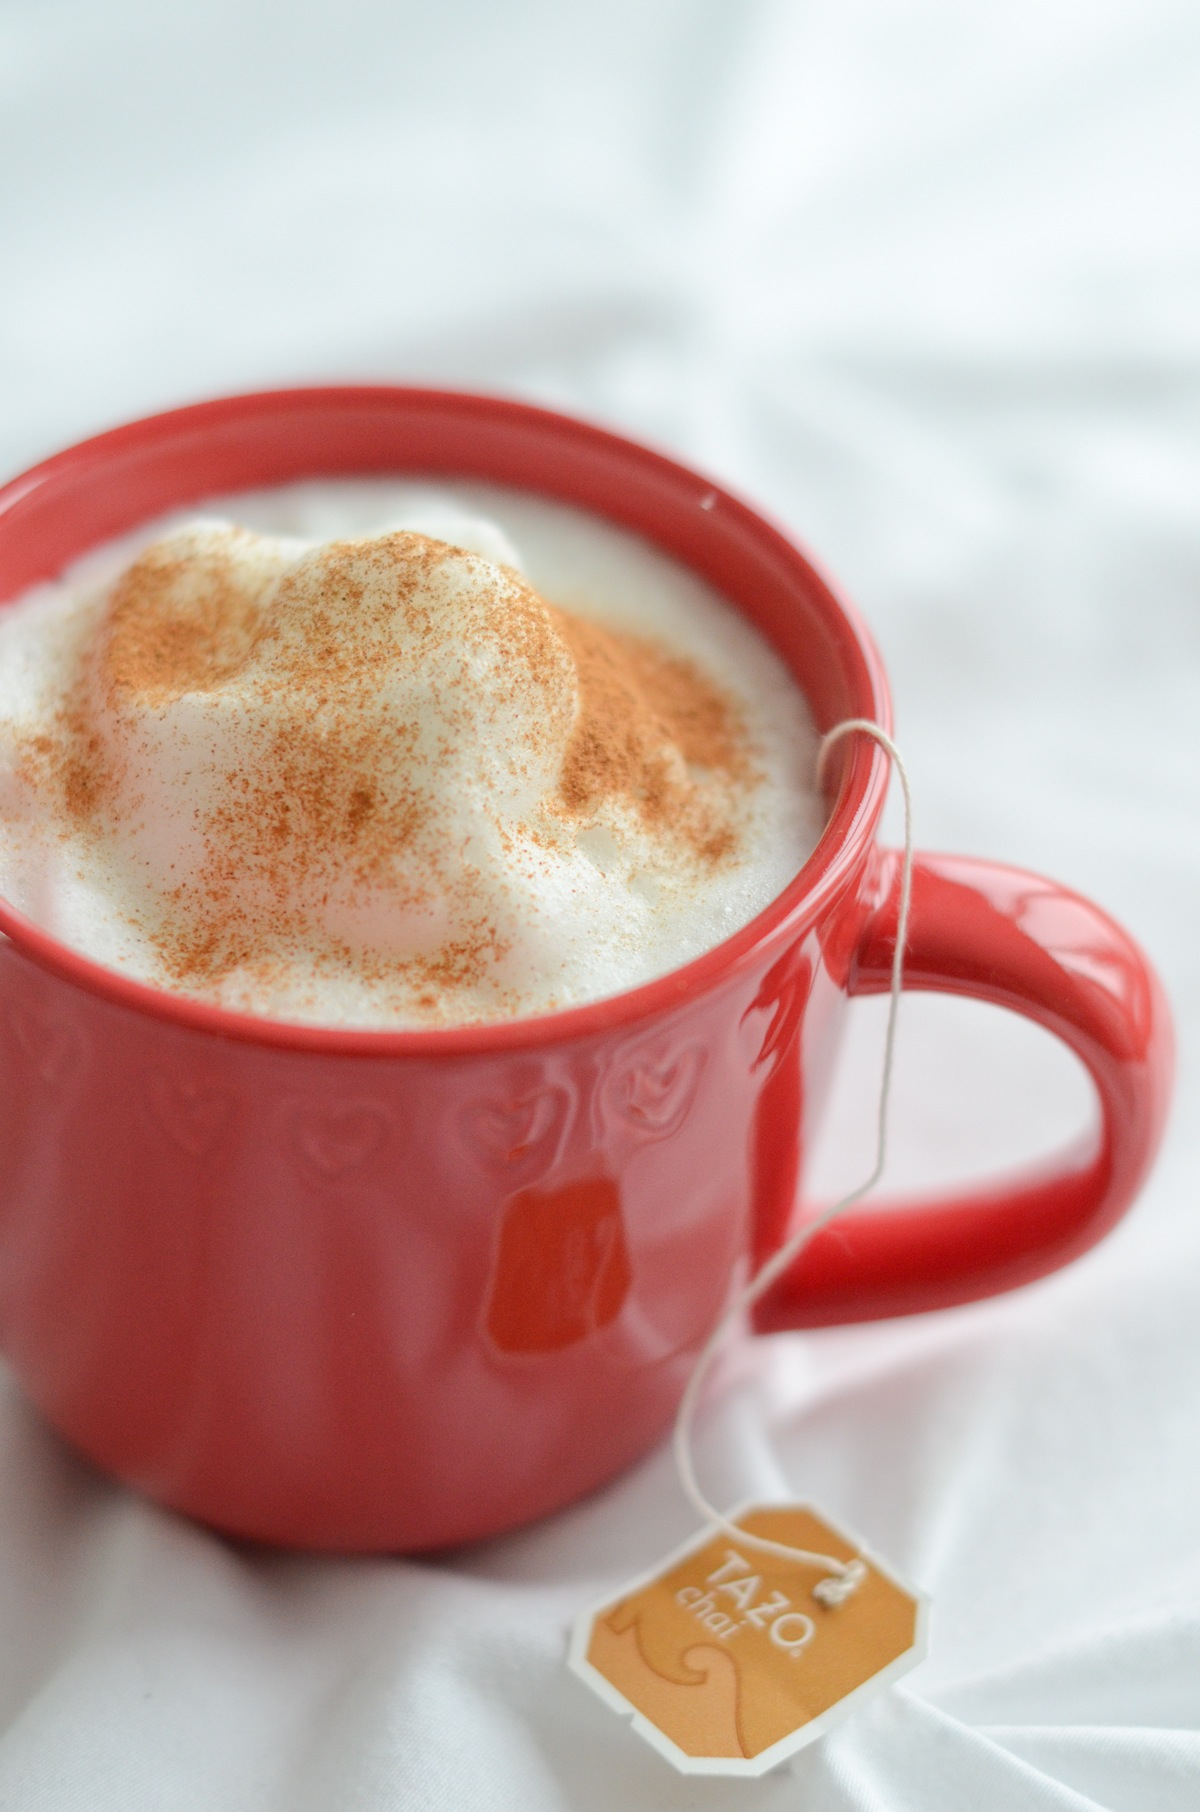 Healthy Chai Tea Latte Recipe - The Chic Life